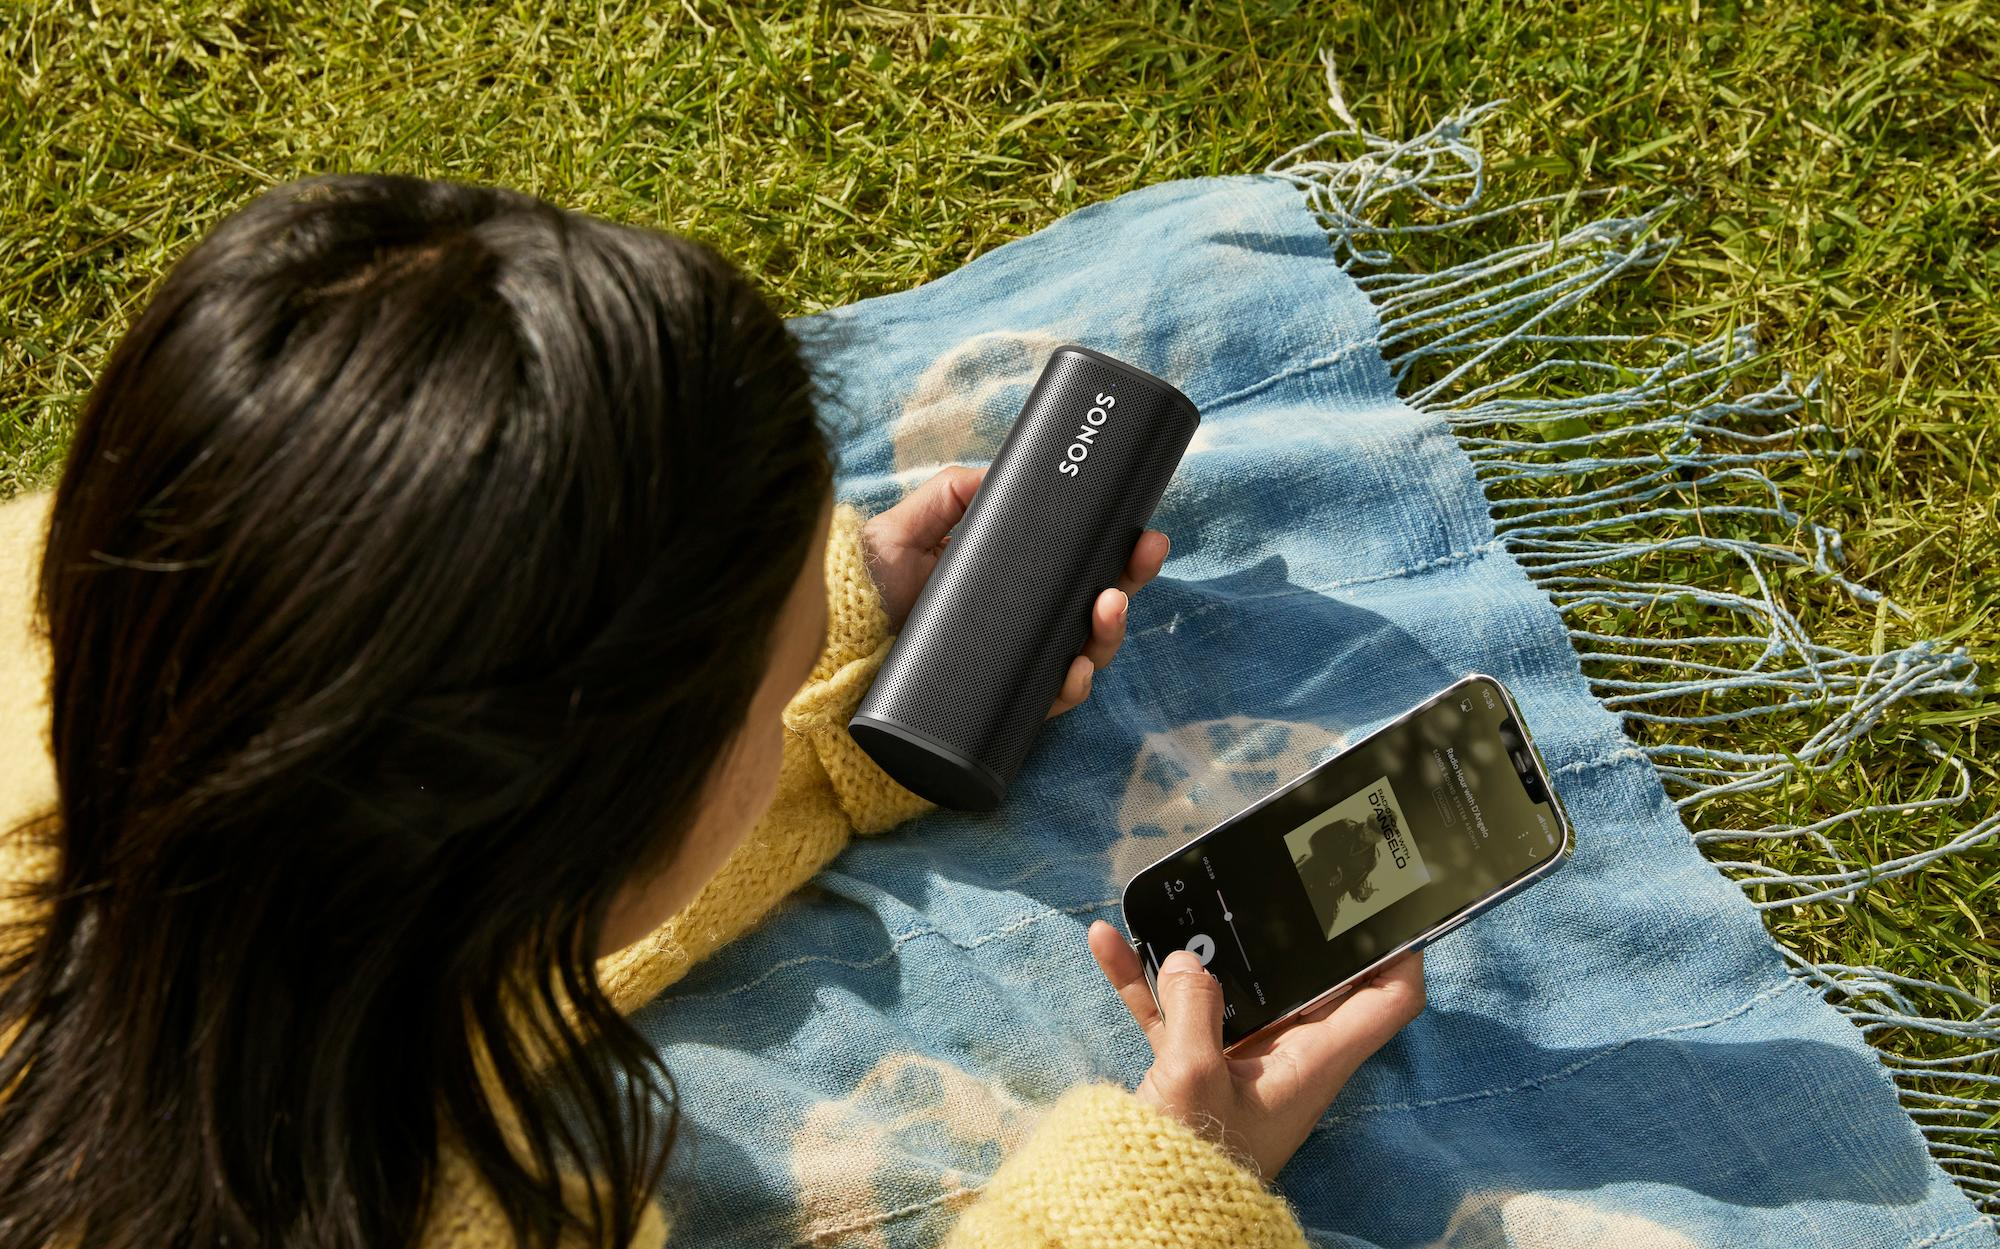 The Roam is Sonos' cheapest and most portable speaker yet